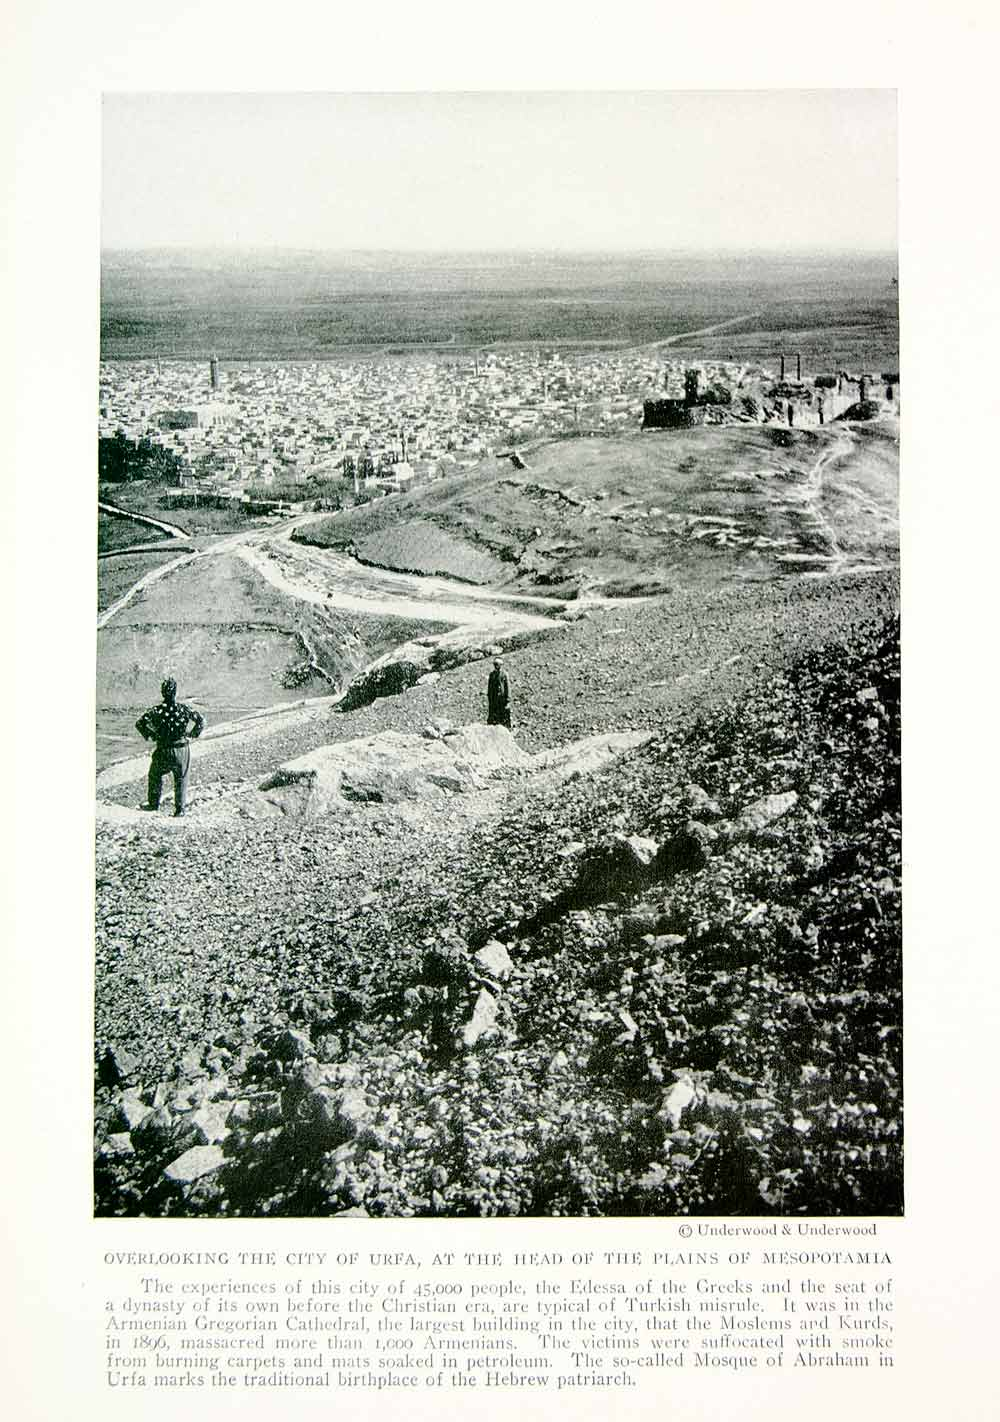 1918 Print Urfa City Turkey Turkish Edessa Mesopotania Historic Image View YNG3